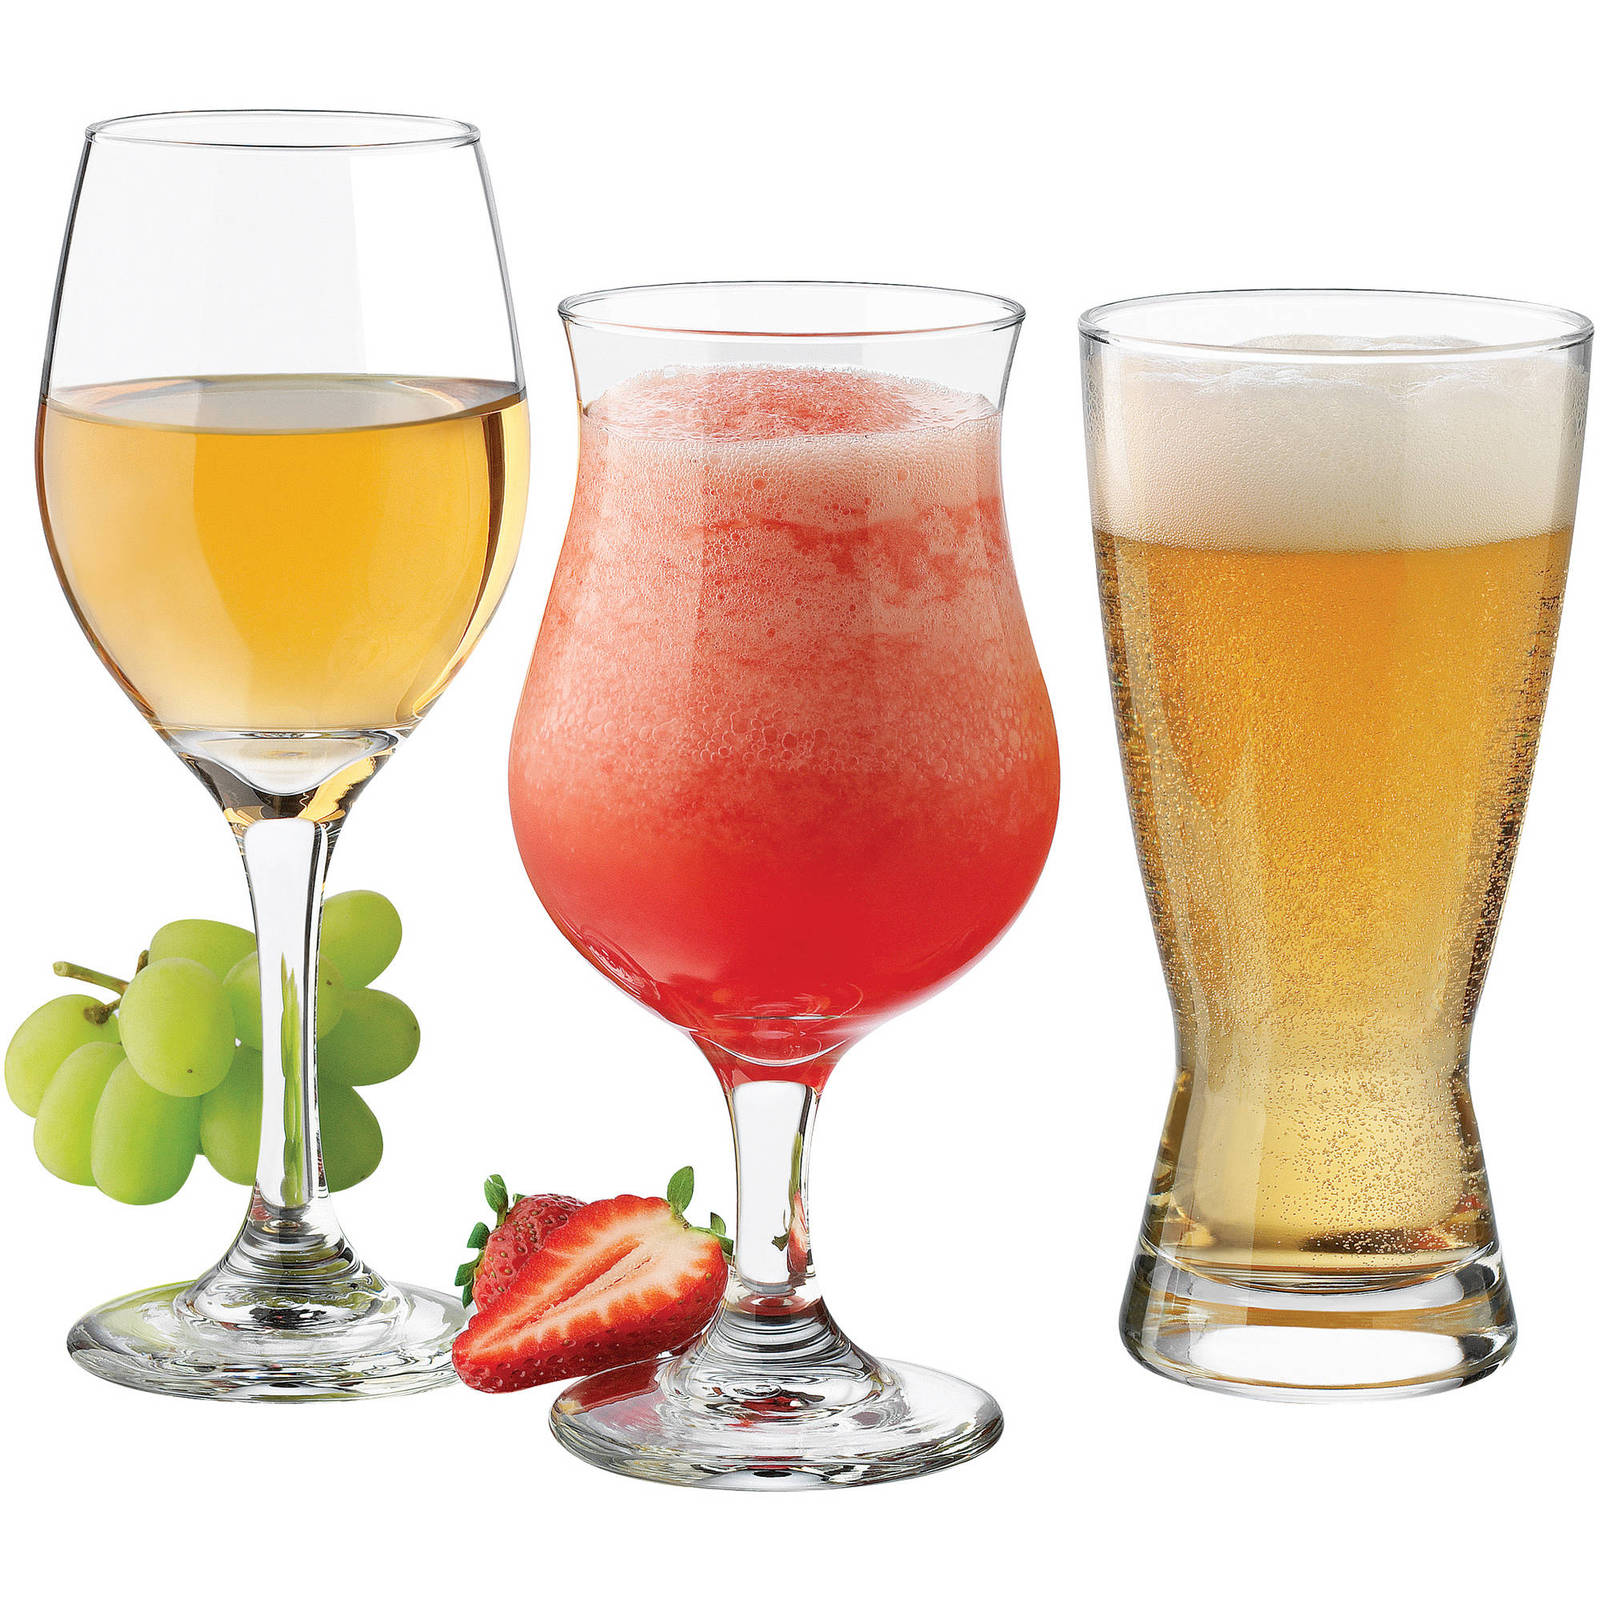 Bar glass set barware glassware wine cocktail beer glases clear 12 pieces